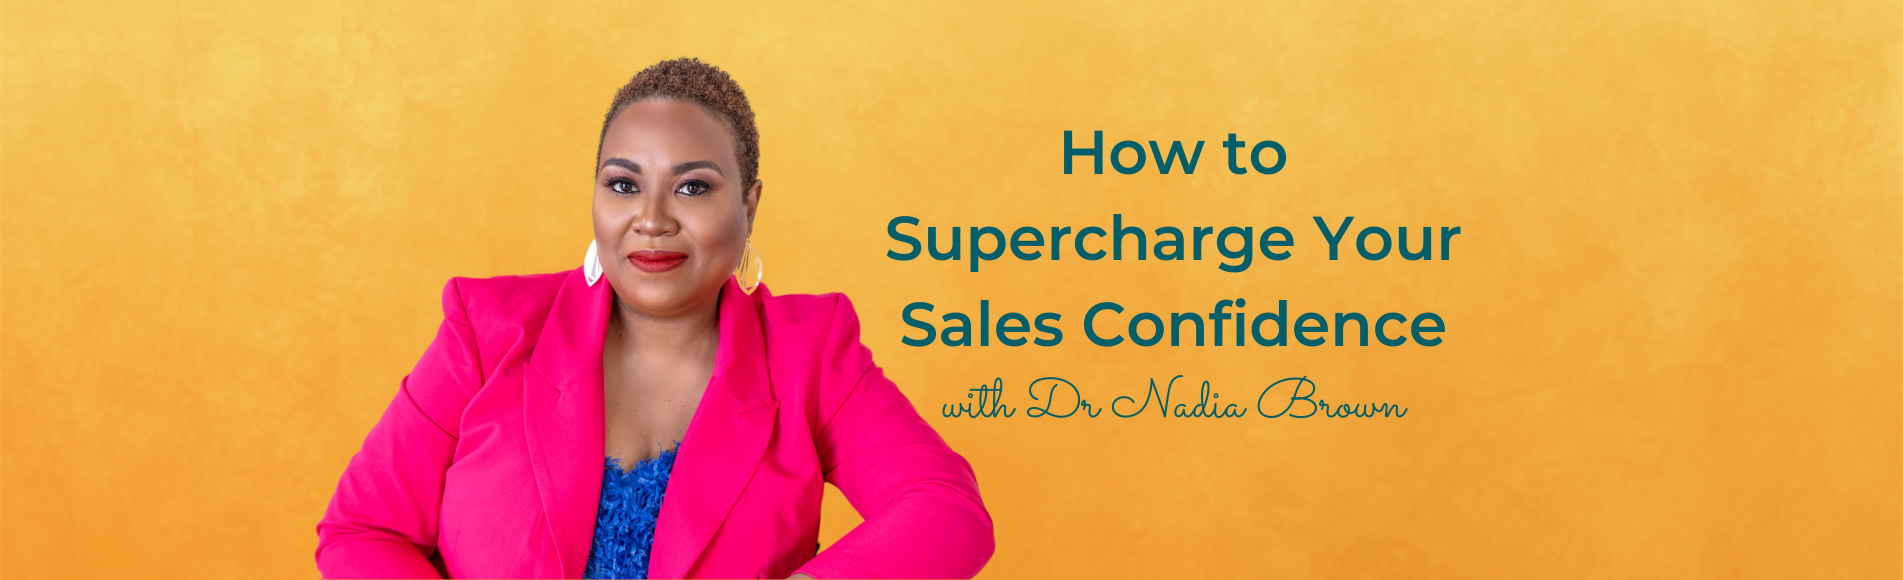 Eps 128: How to Supercharge Your Sales Confidence with Dr Nadia Brown